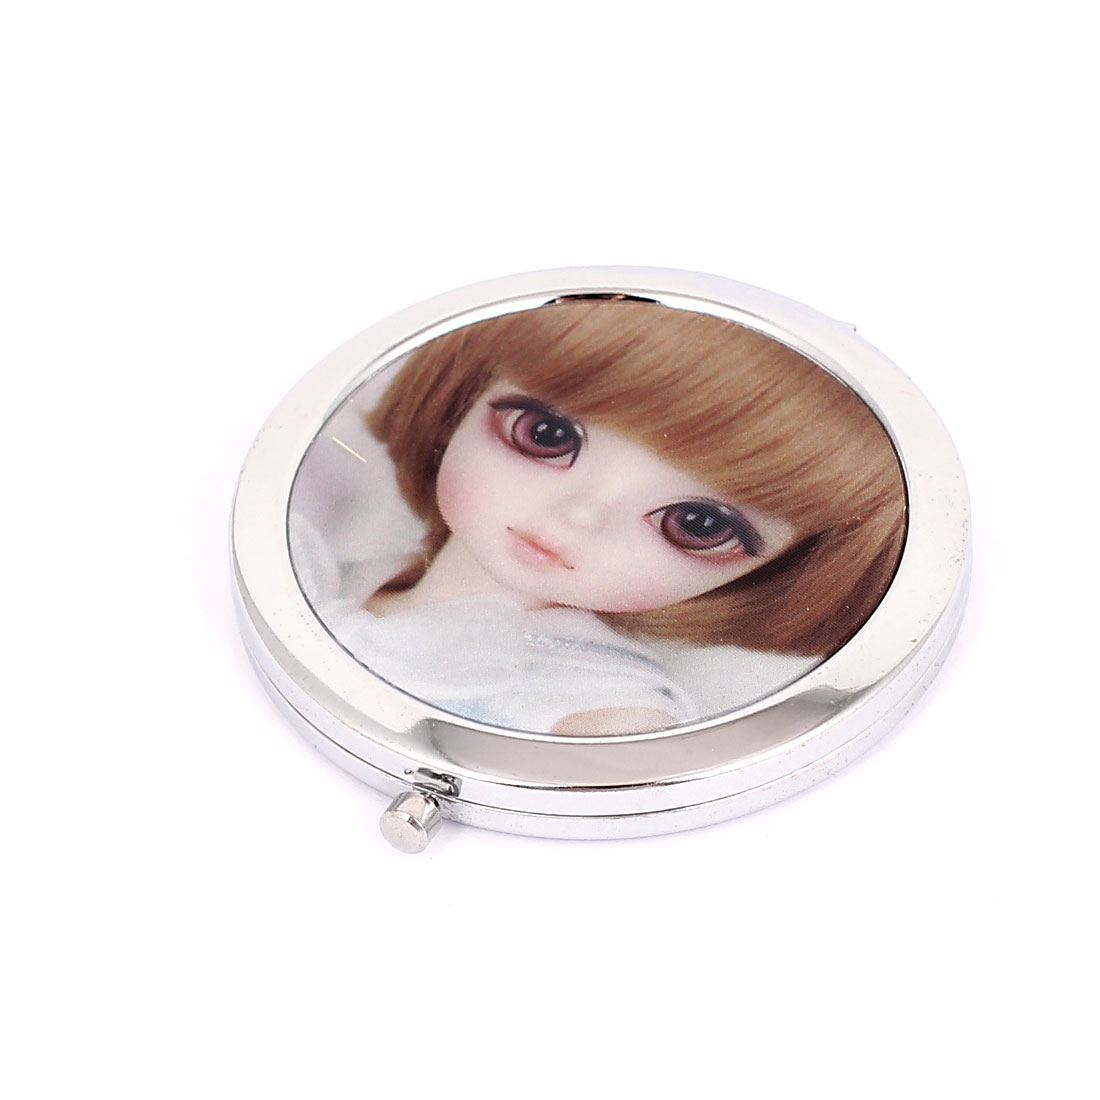 Silver Tone Metal Girl Printed Round Shape Folding Makeup Mirror